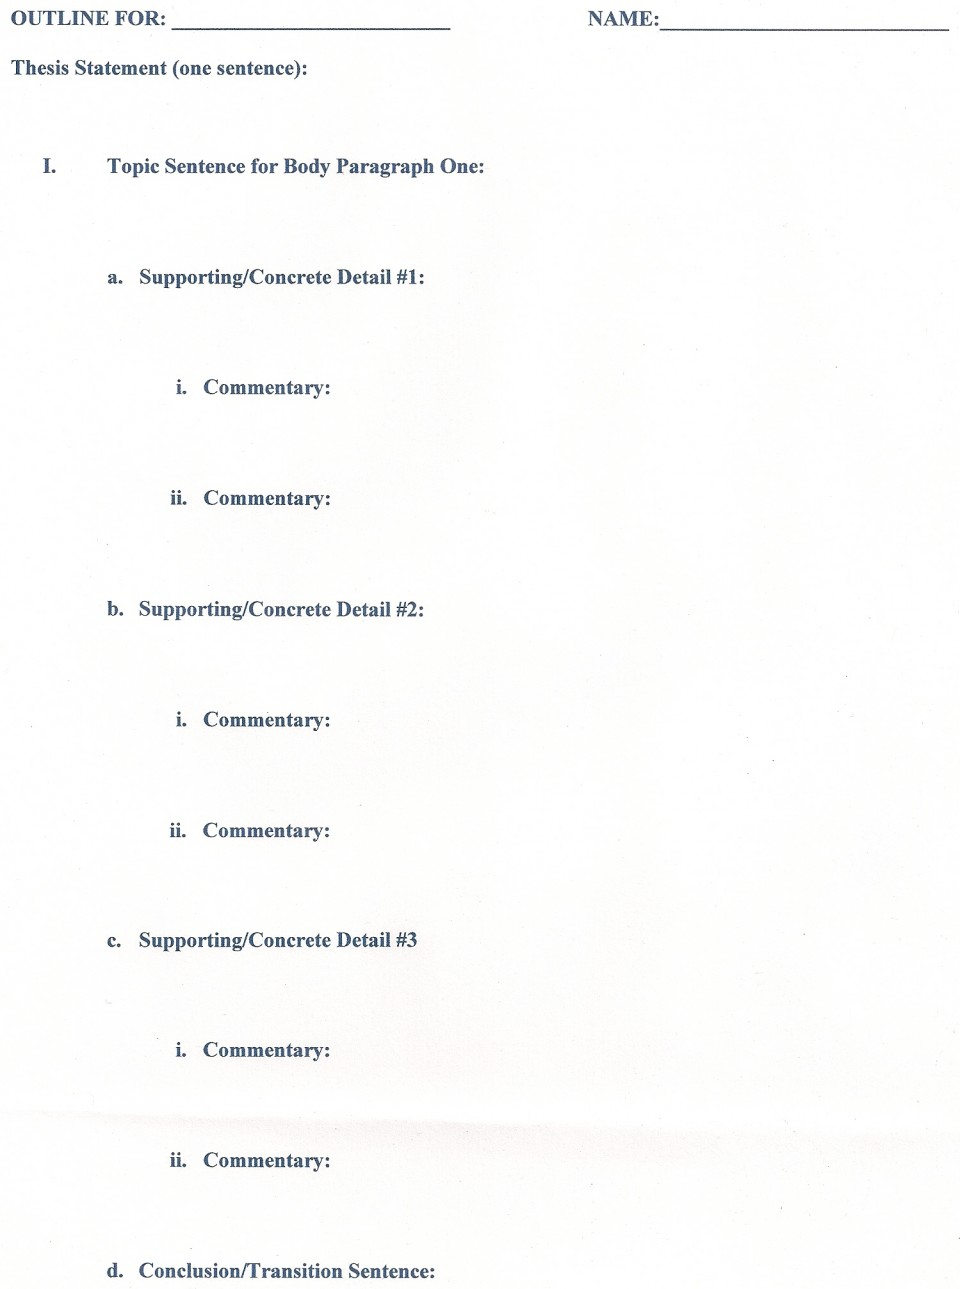 013 Outline Career Research Paper Unusual Template 960